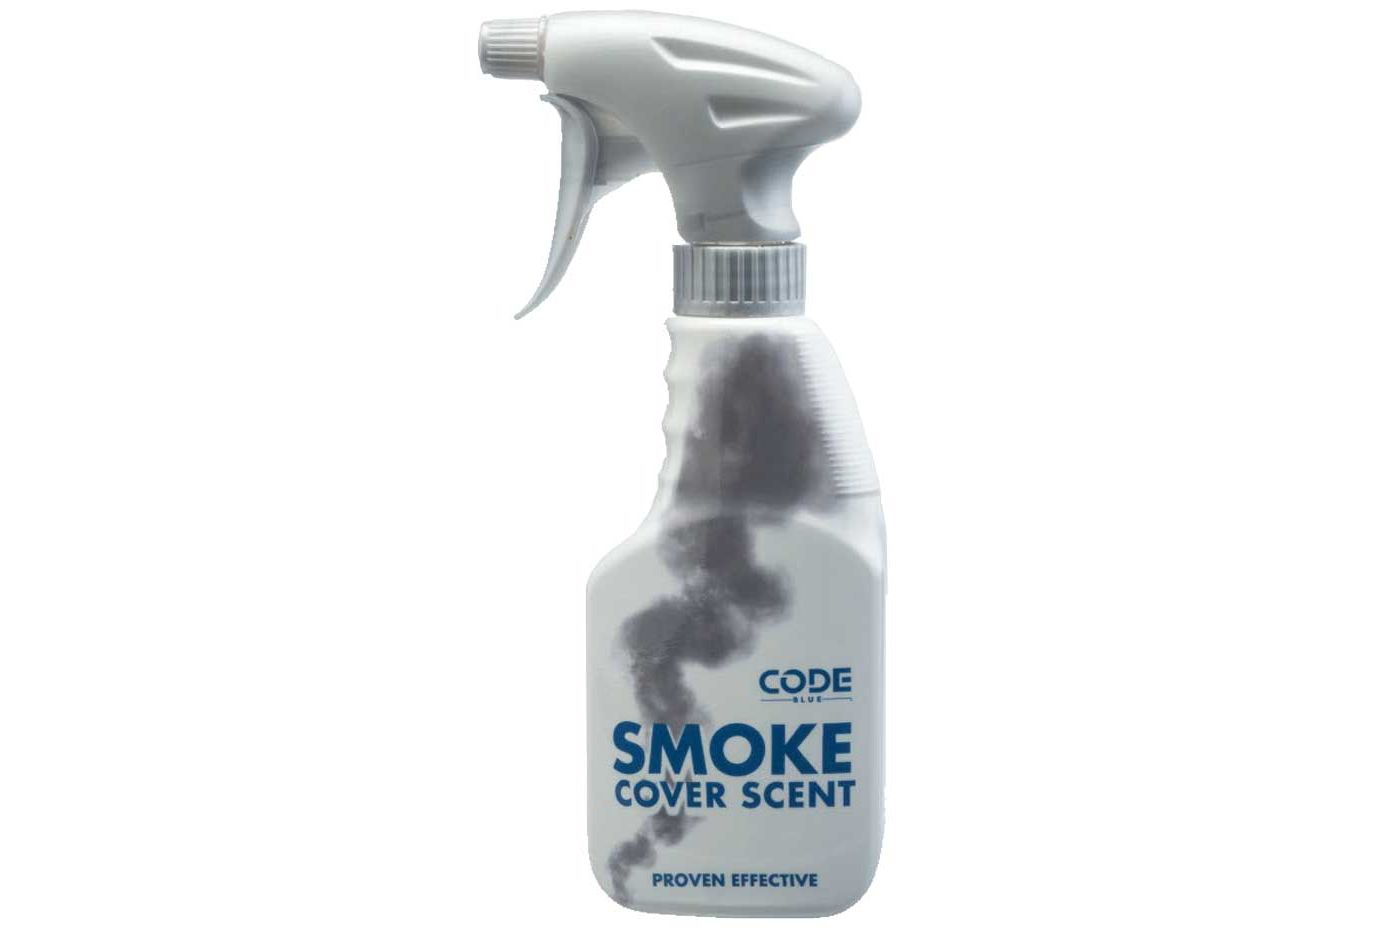 Code Blue Smoke Cover Scent